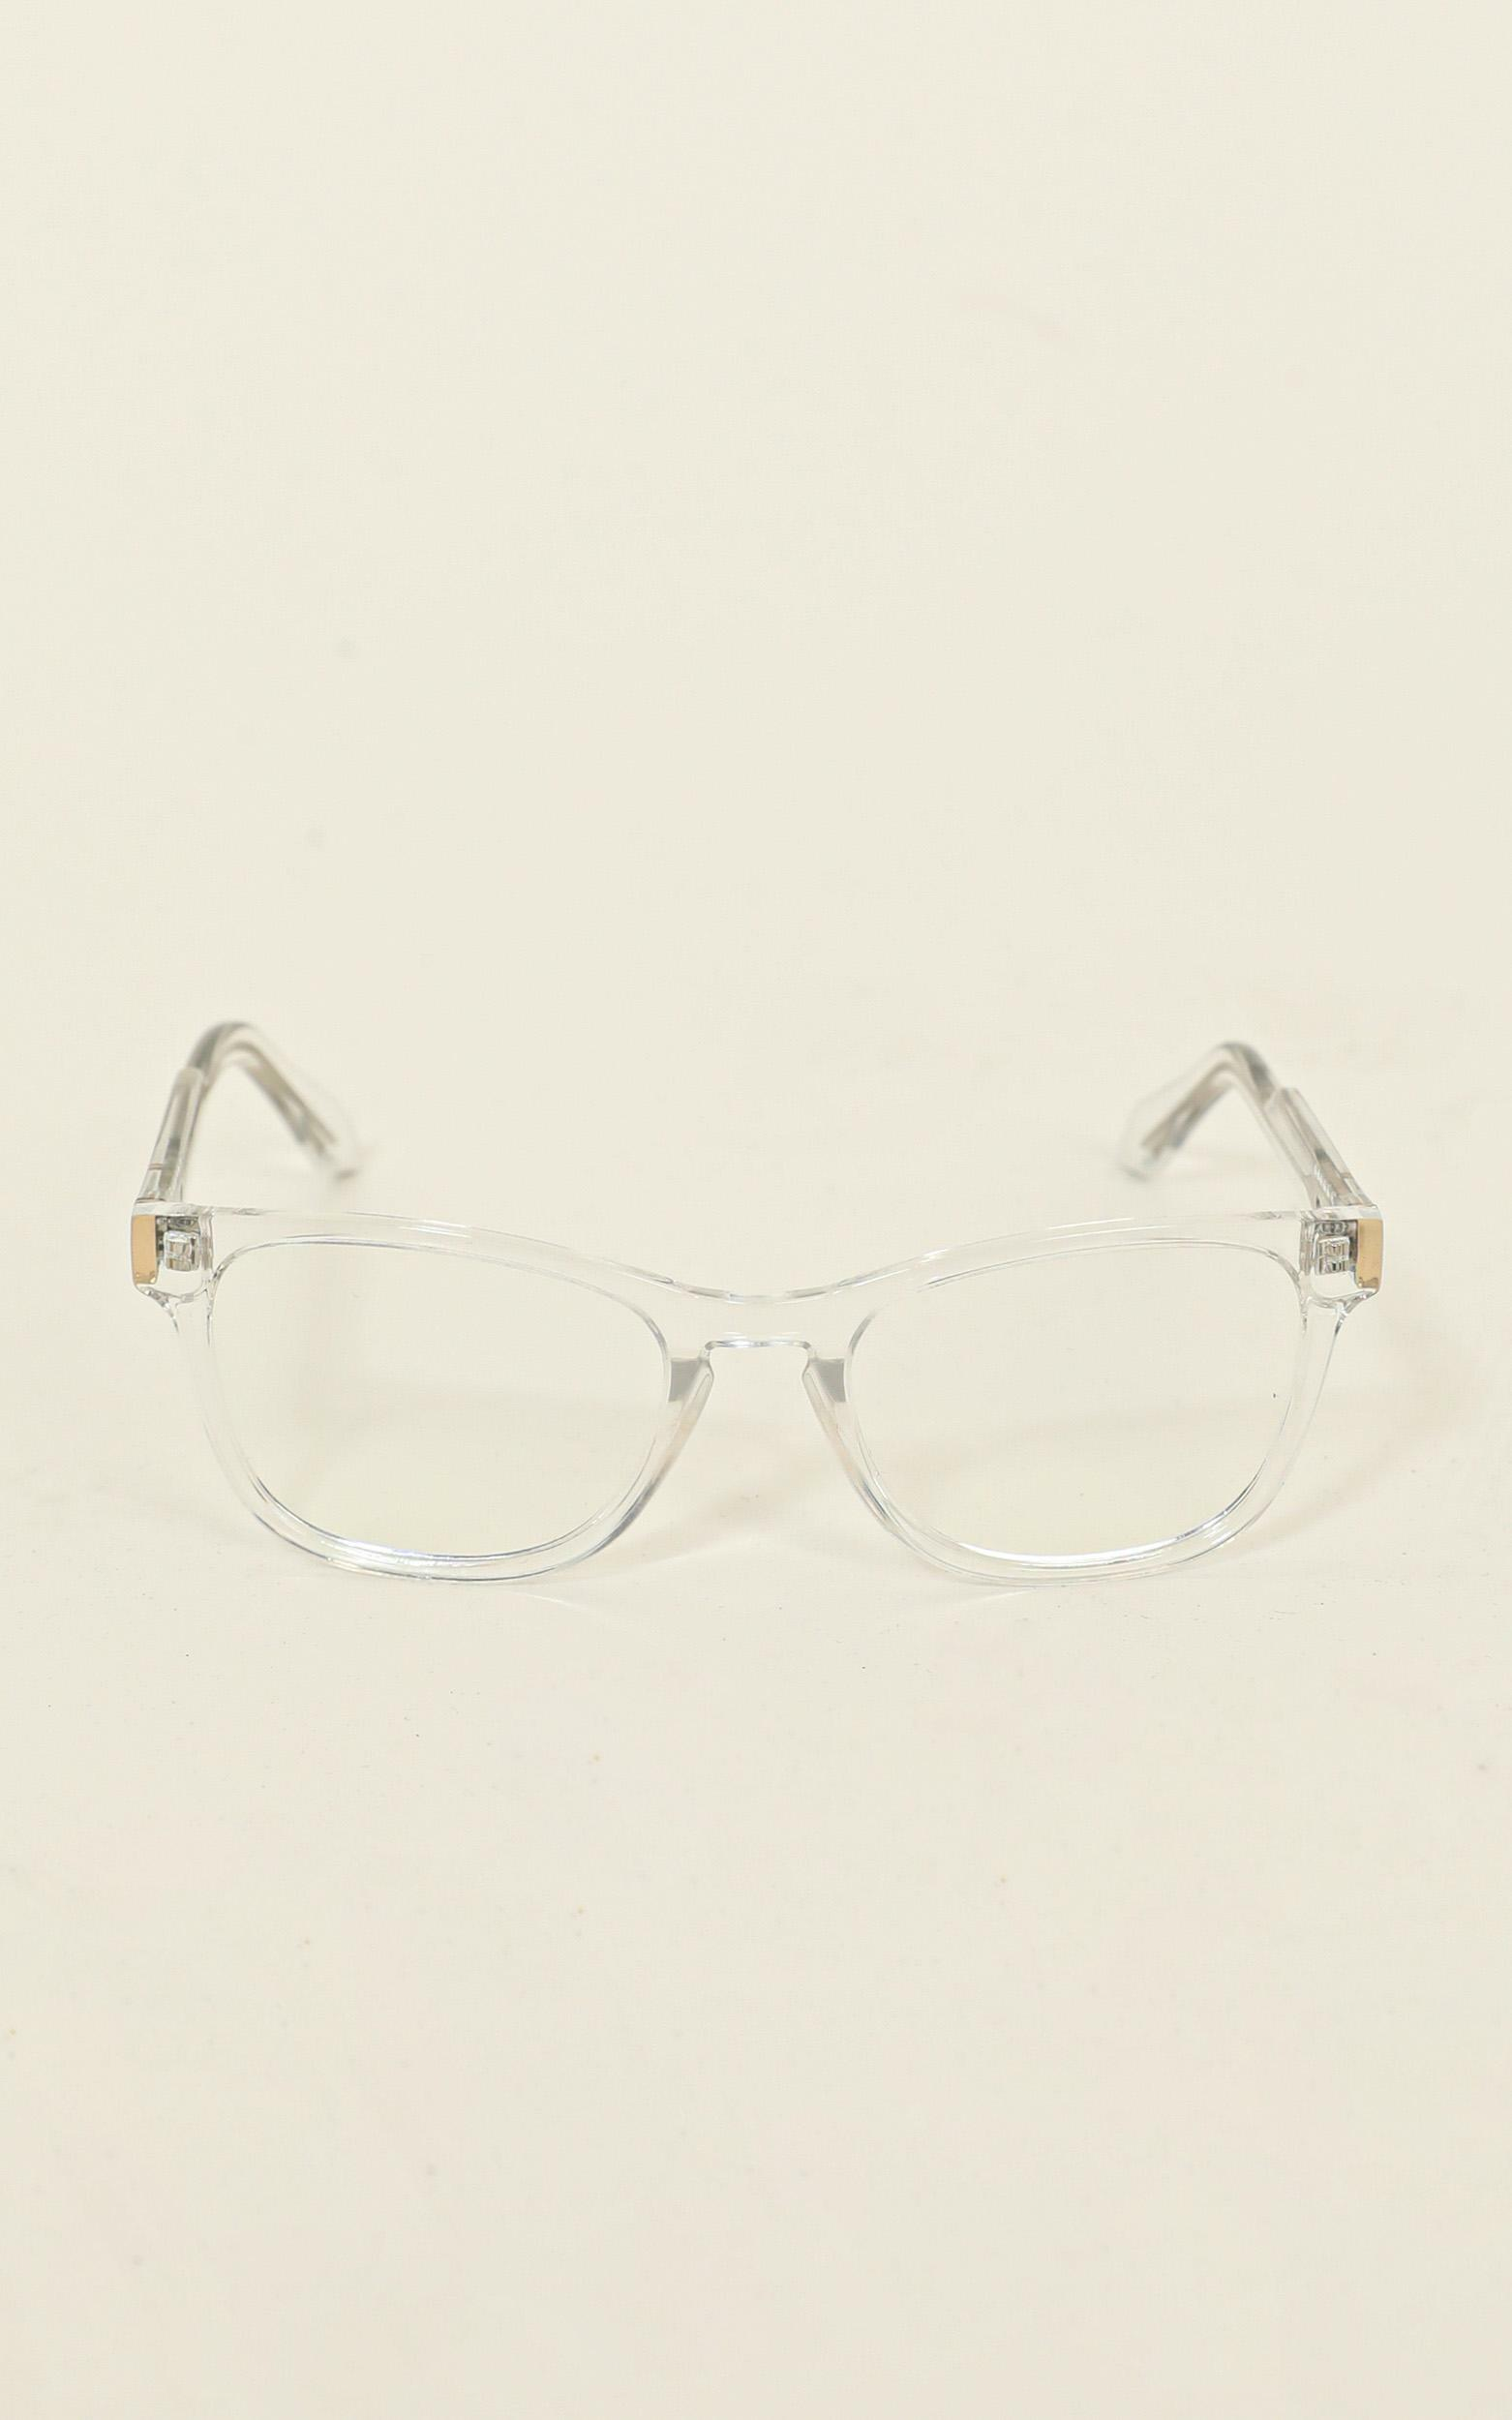 Quay - Hardwire Mini Blue Light Glasses In Clear, , hi-res image number null